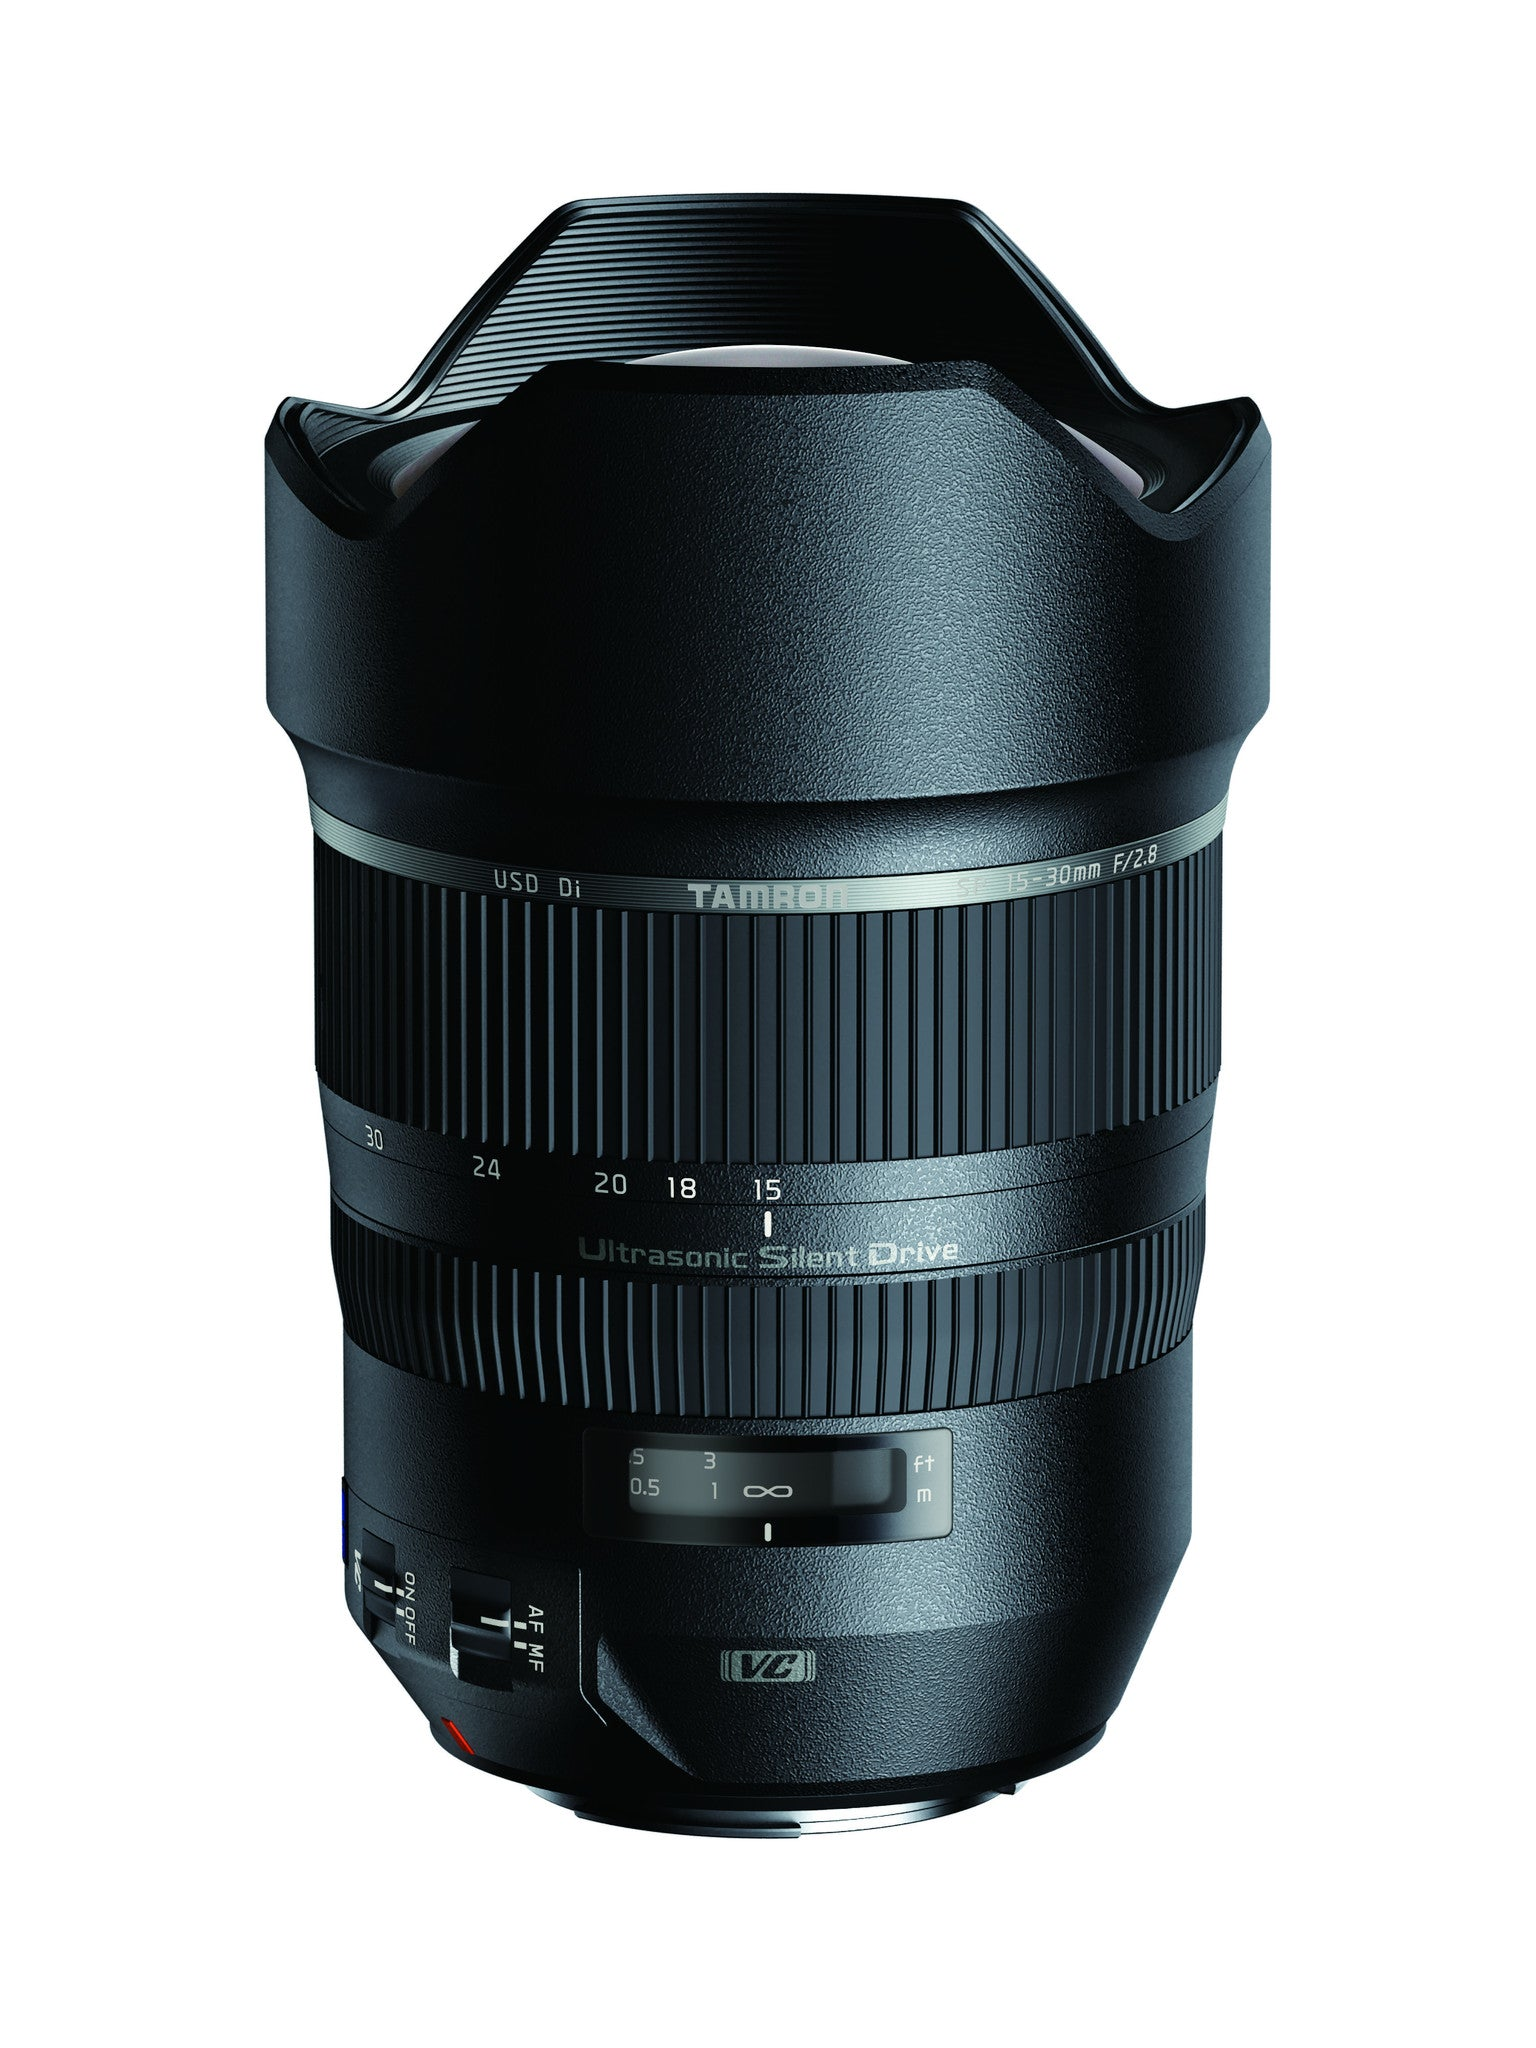 Tamron SP 15-30mm F2.8 VC Nikon Mount